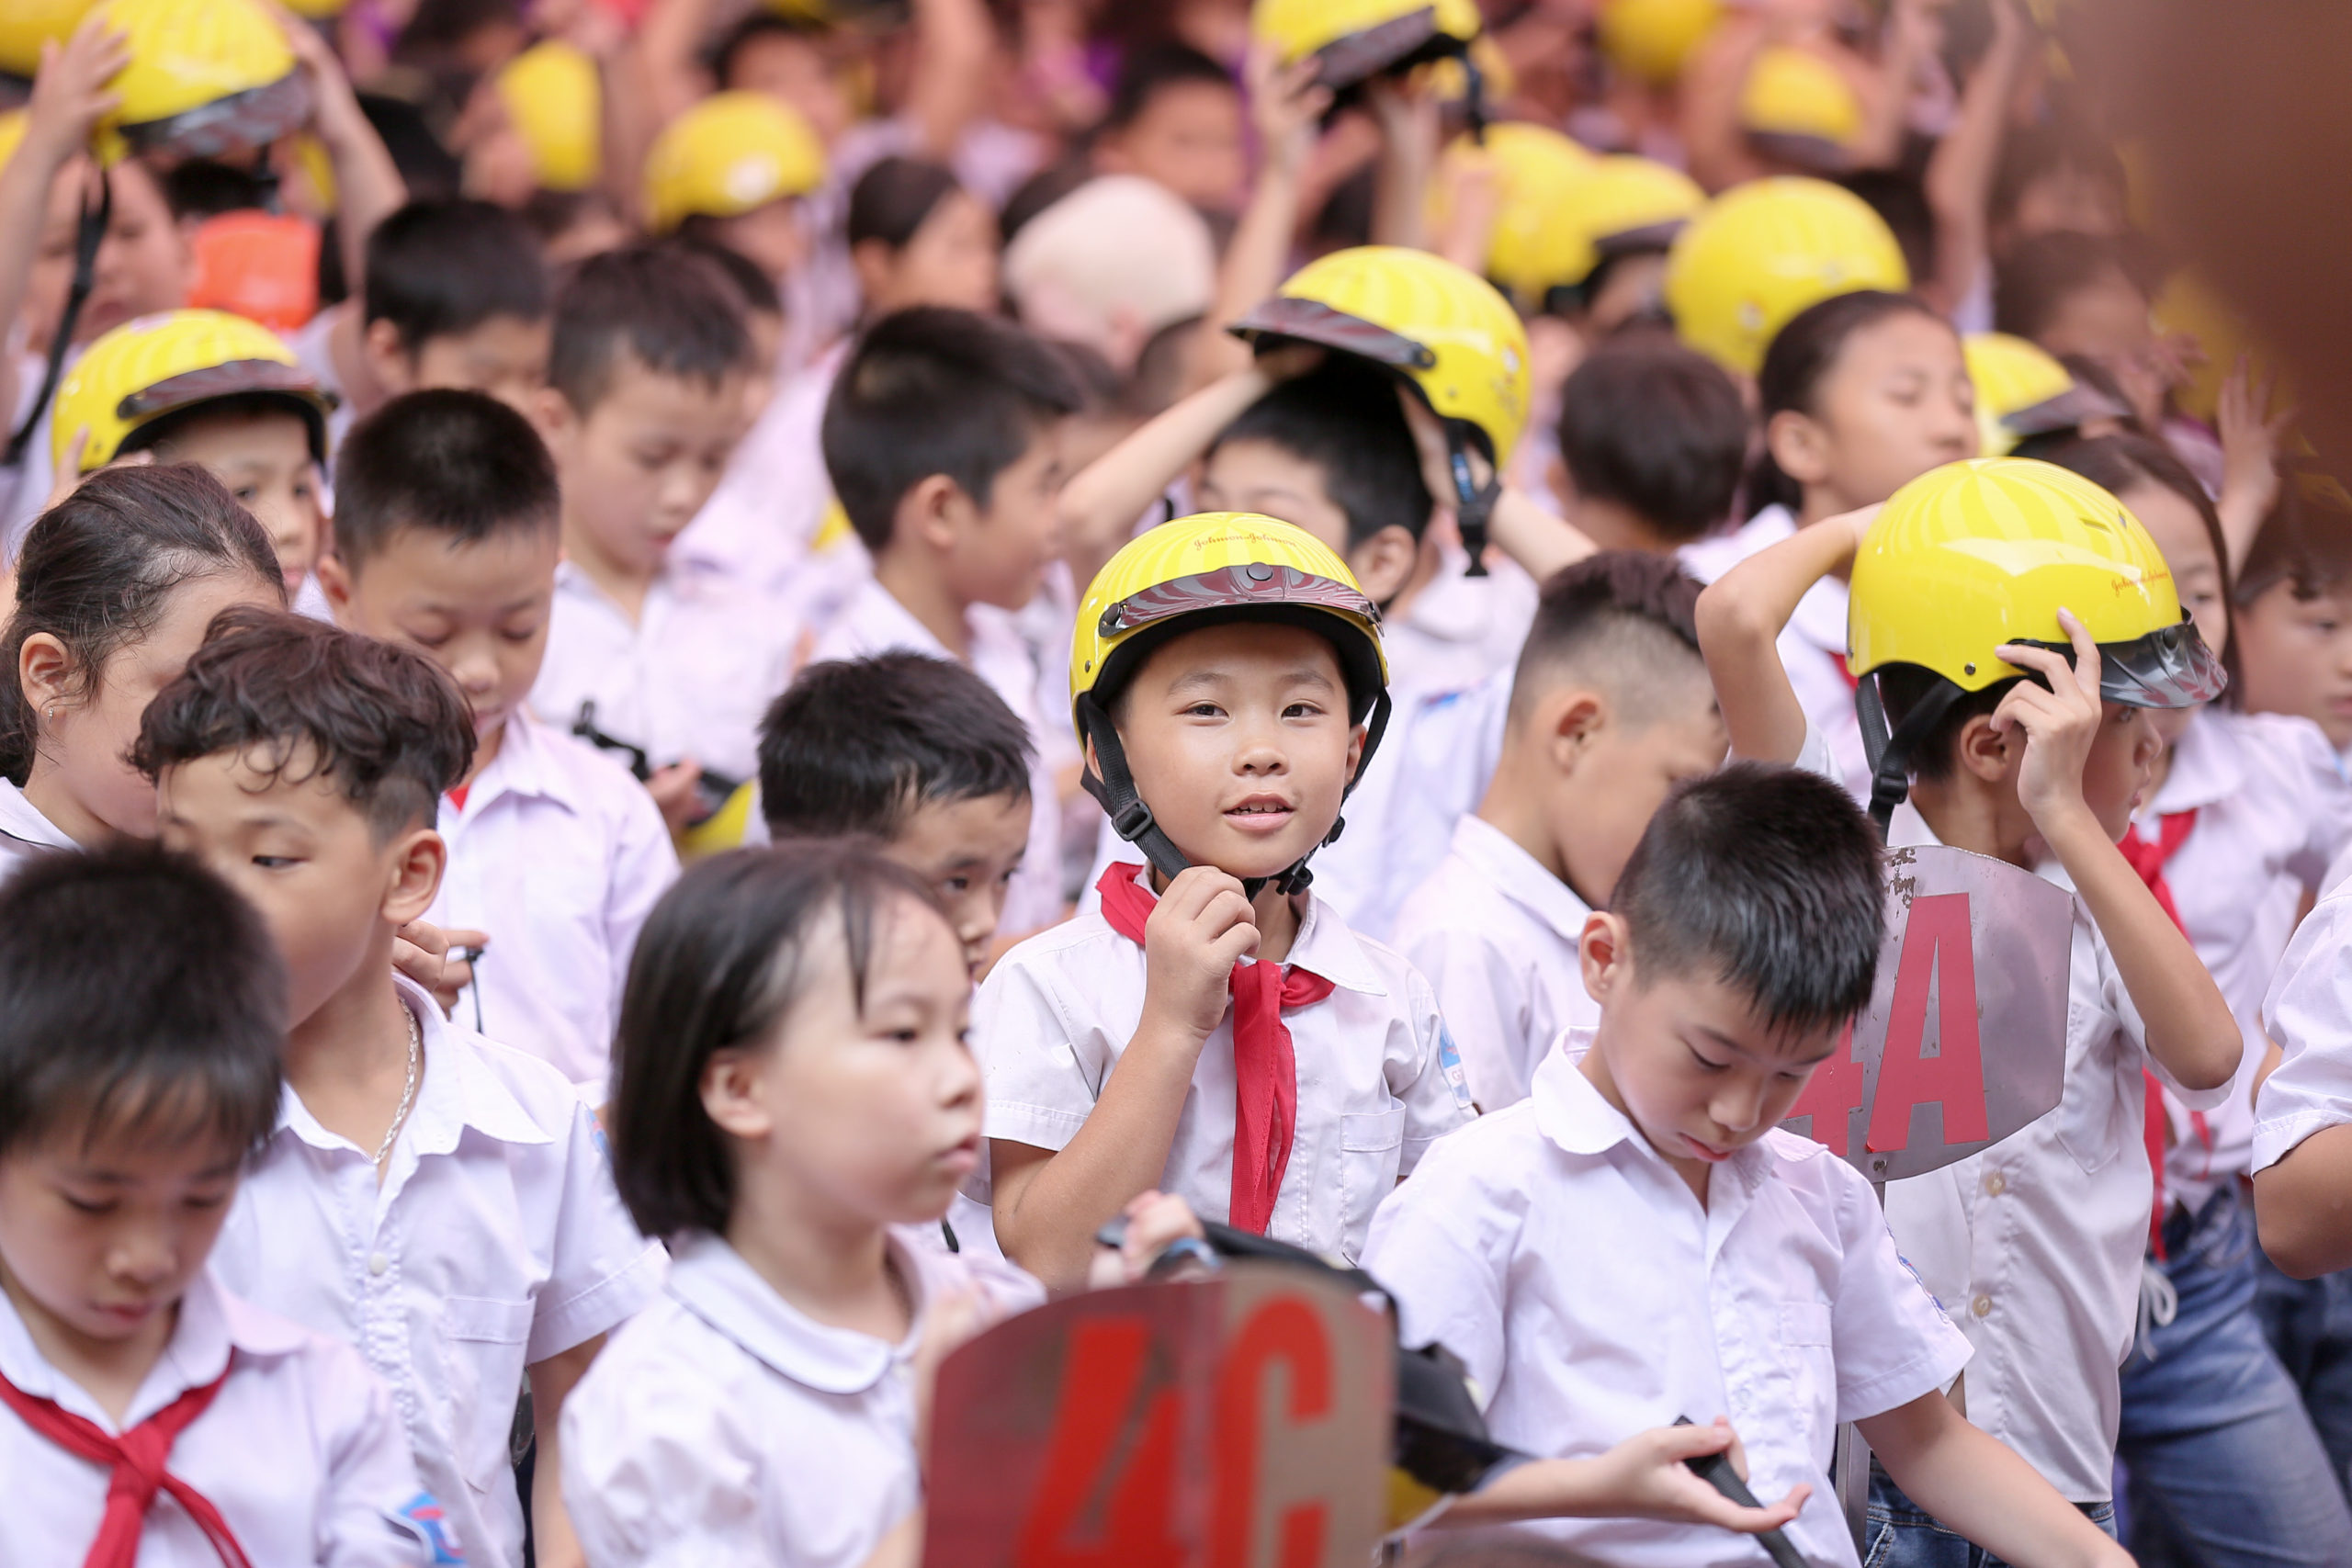 A student at a program school in Thai Nguyen, Vietnam wears his quality helmet provided through the Helmets for Kids program.